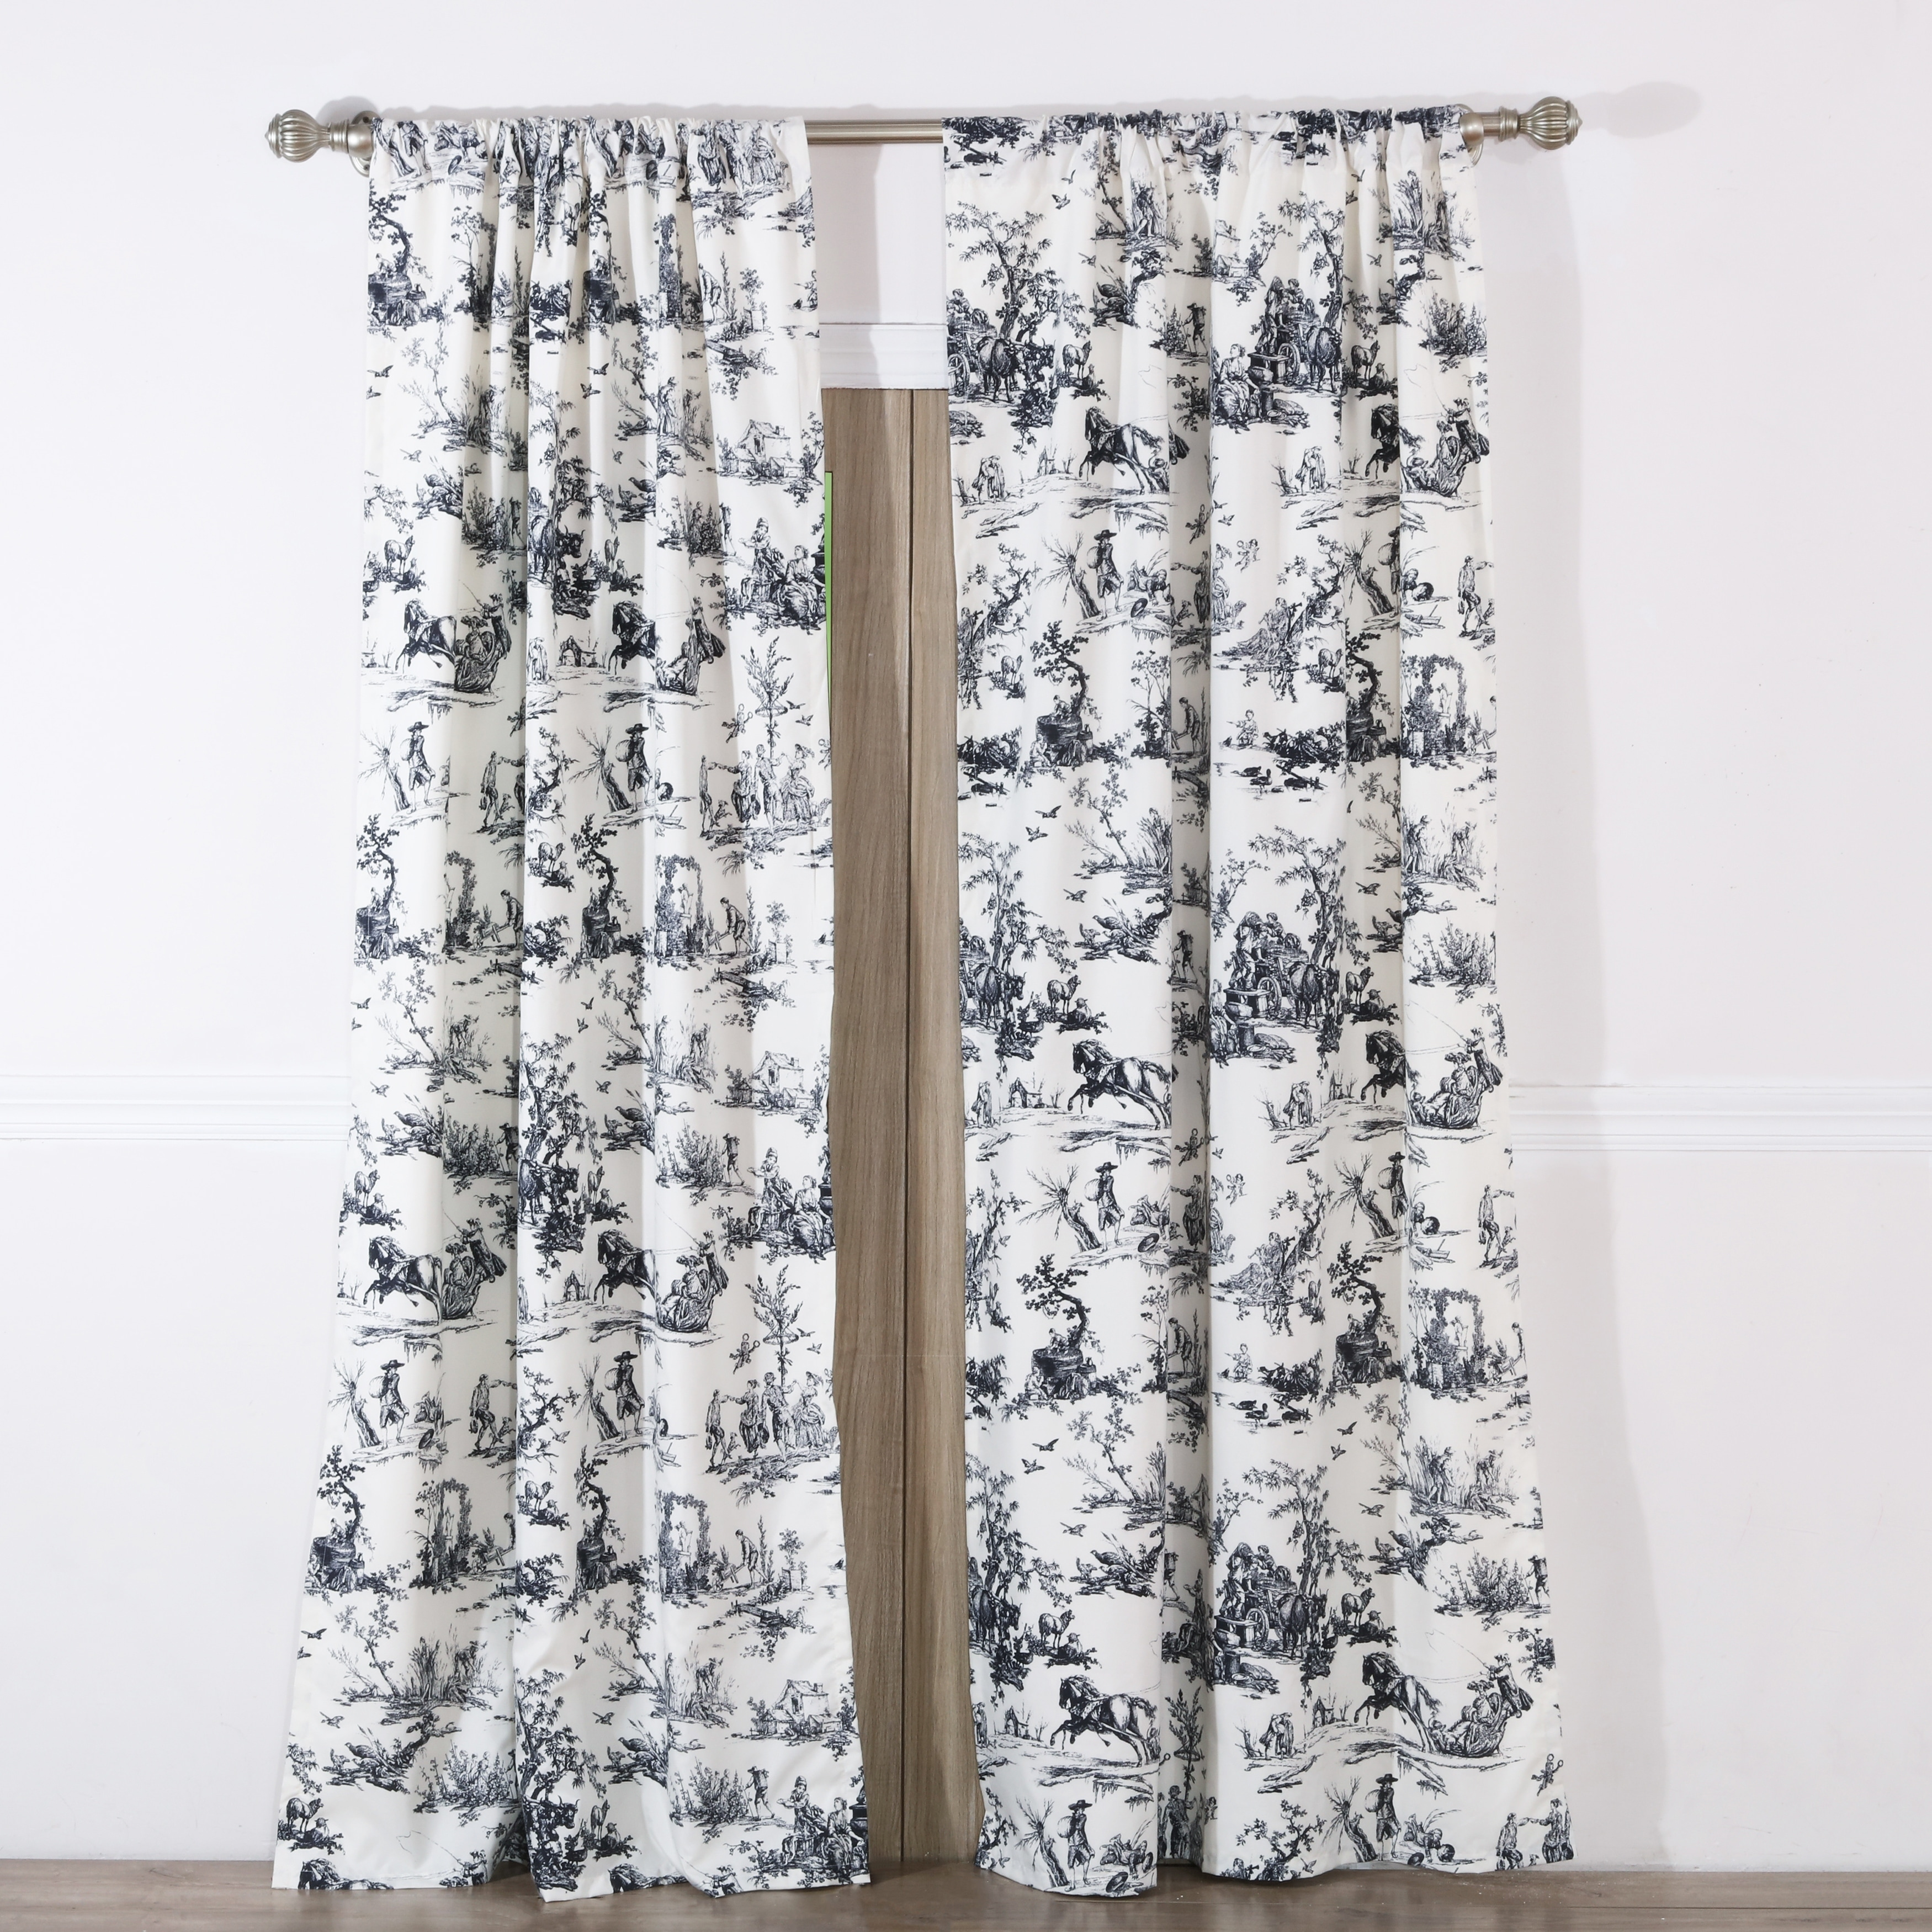 Clic Toile Black Curtain Panel Pair